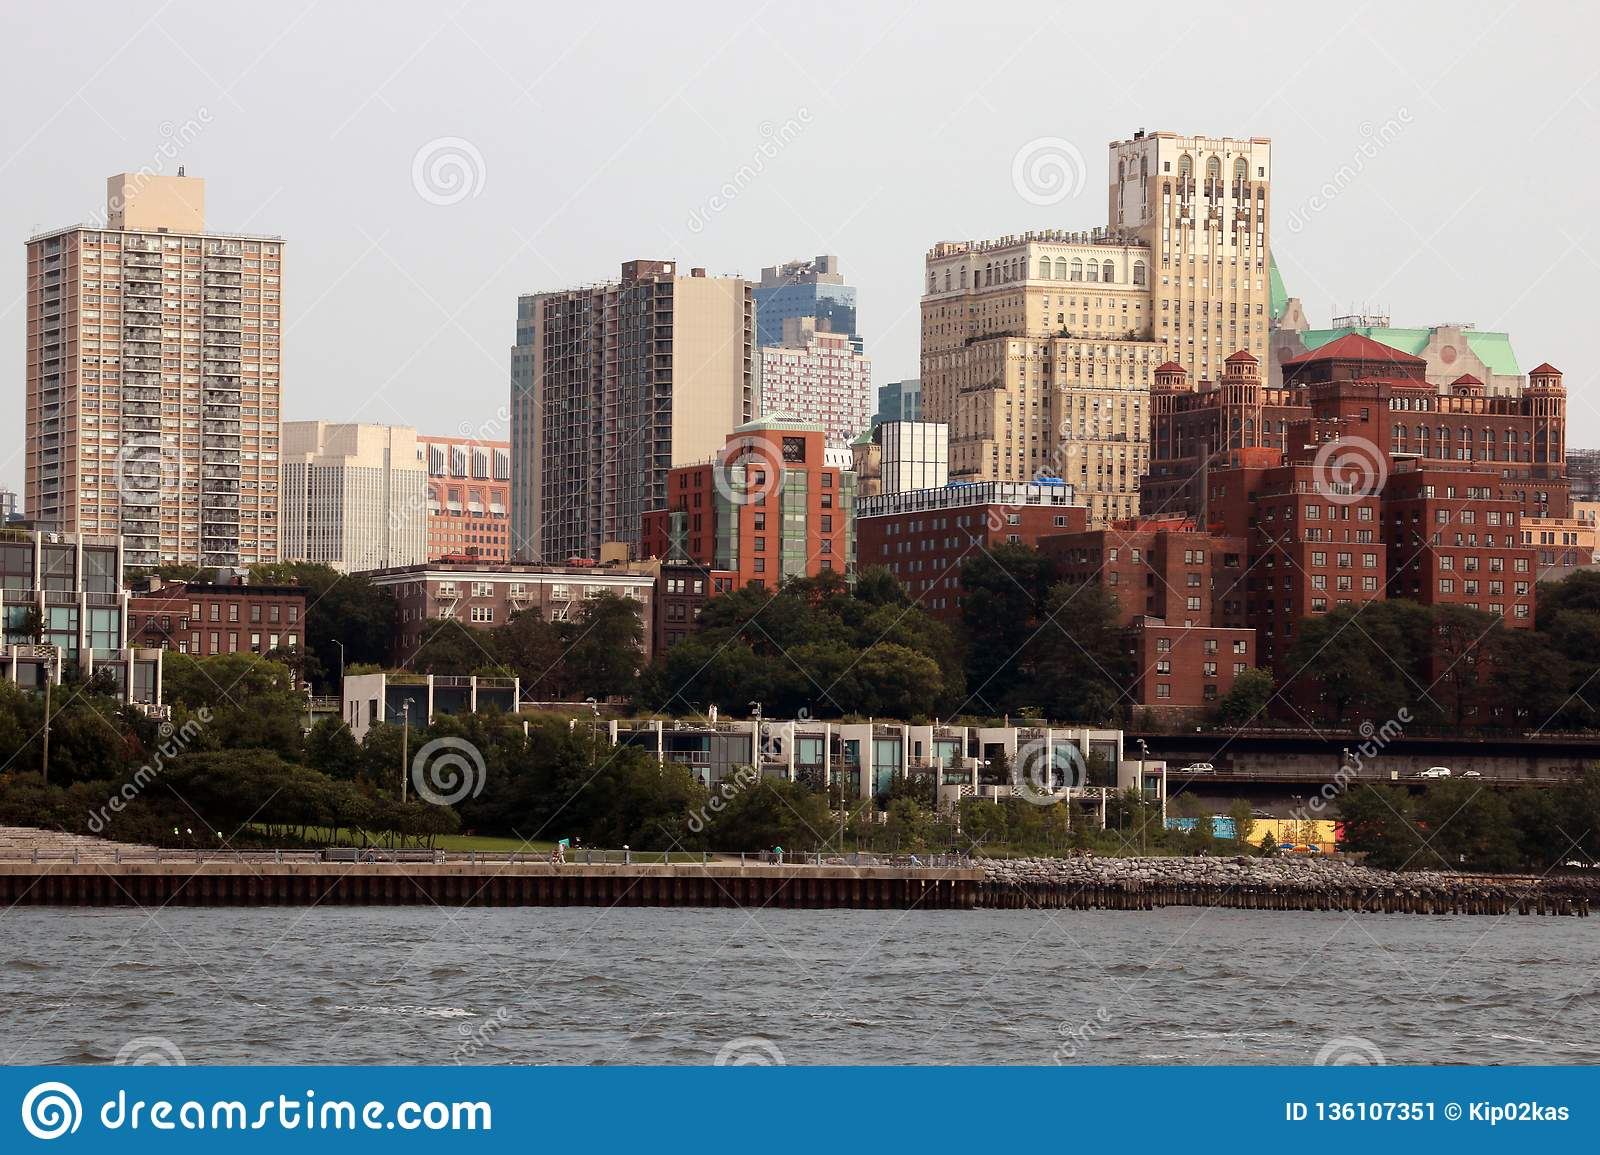 New York, USA - September 2, 2018: Brooklyn is the most populous of New York`s five boroughs. Traditional building in